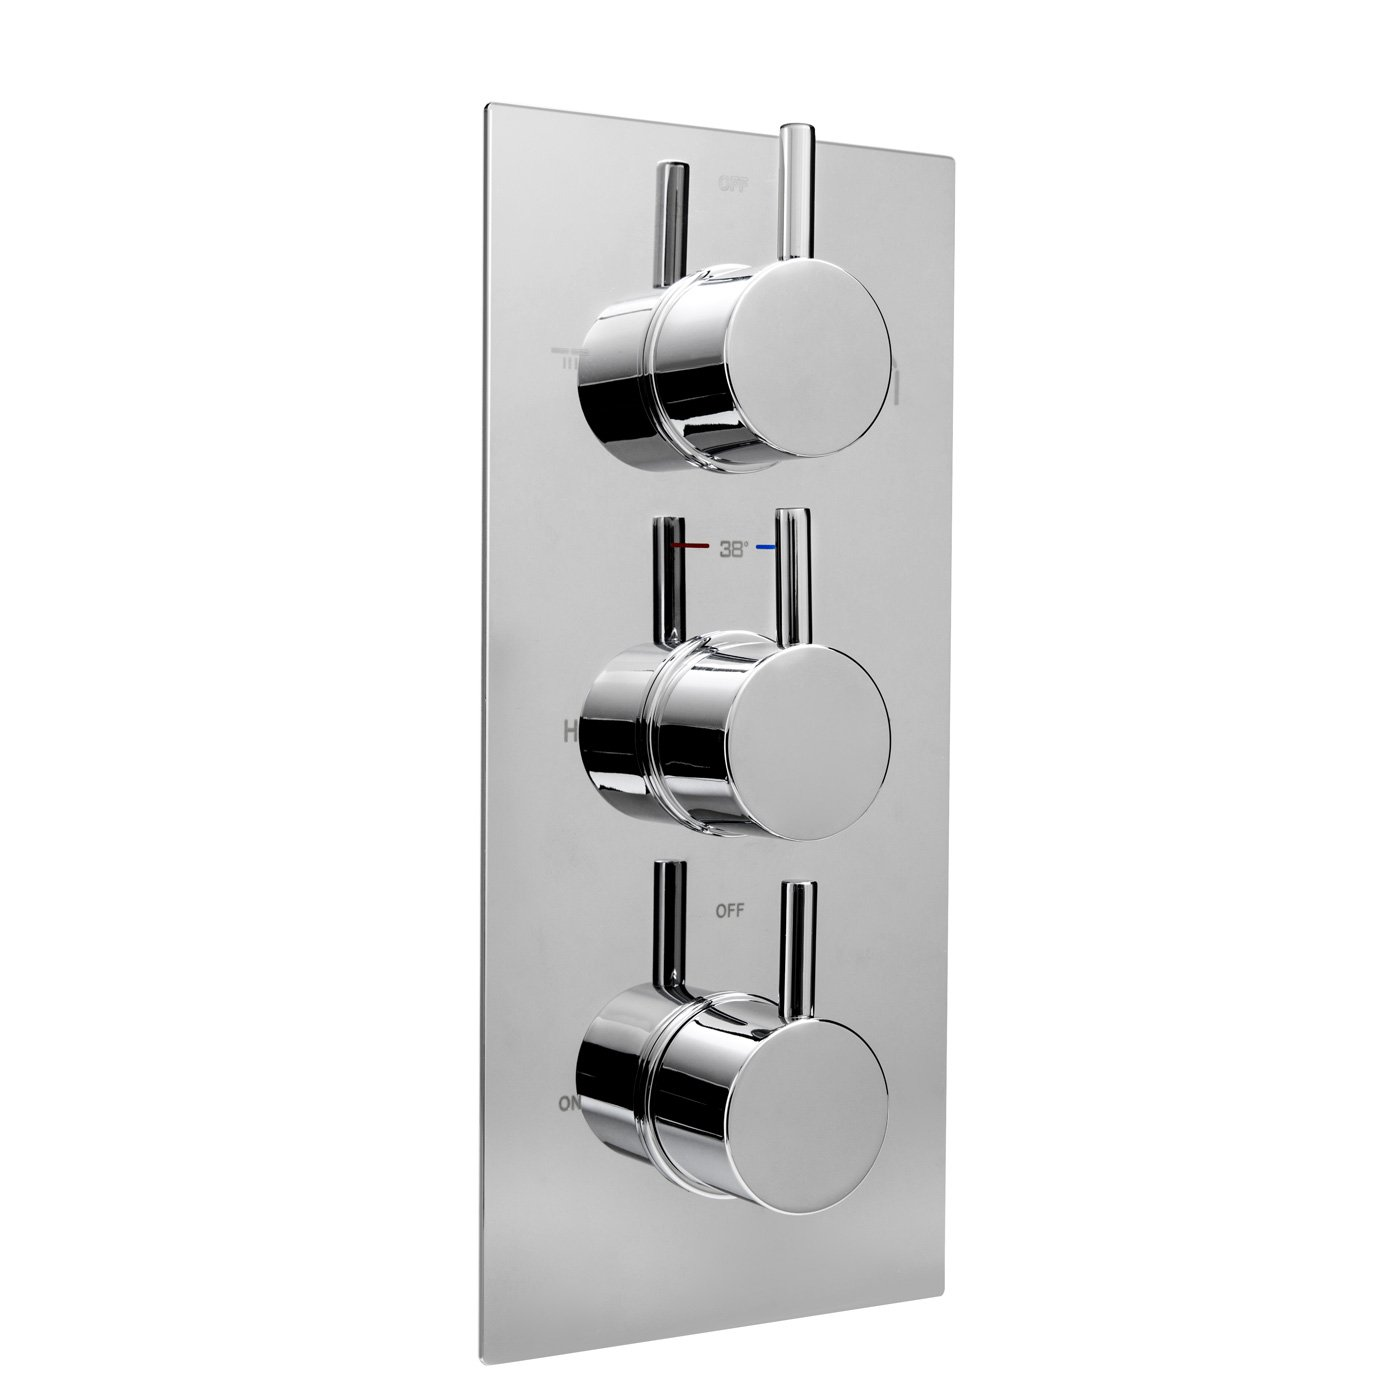 3 Way Chrome Concealed Thermostatic Mixer Shower Valve Brass Diverter  Outlet: IBathUK: Amazon.co.uk: Kitchen U0026 Home